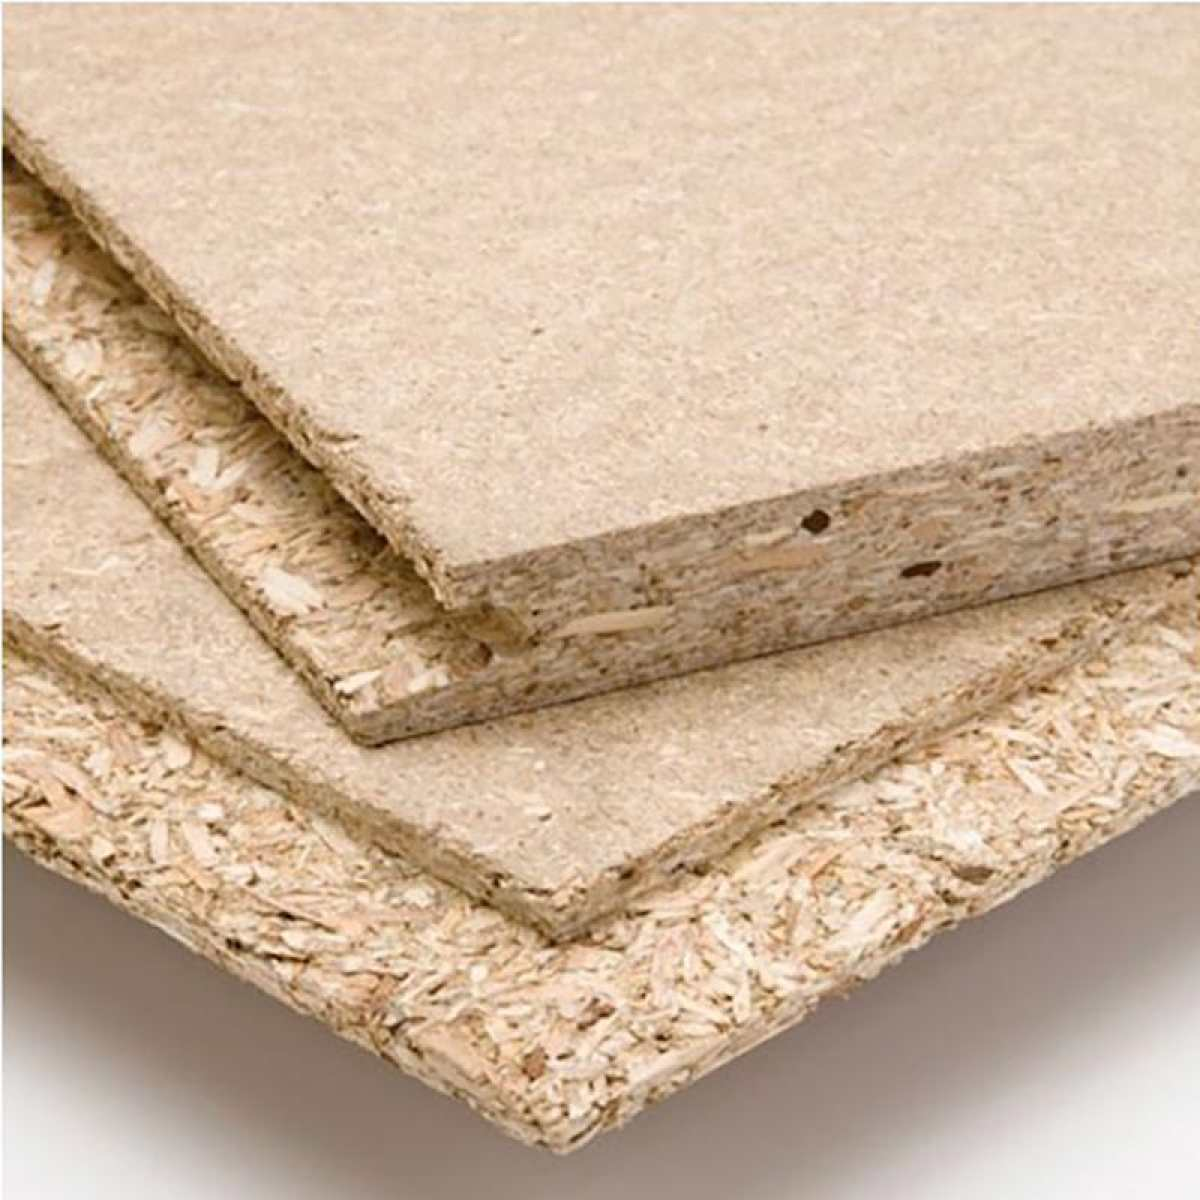 chipboard tongue and groove flooring sheet material websterstimber 800x800 1 Image by Websters Timber